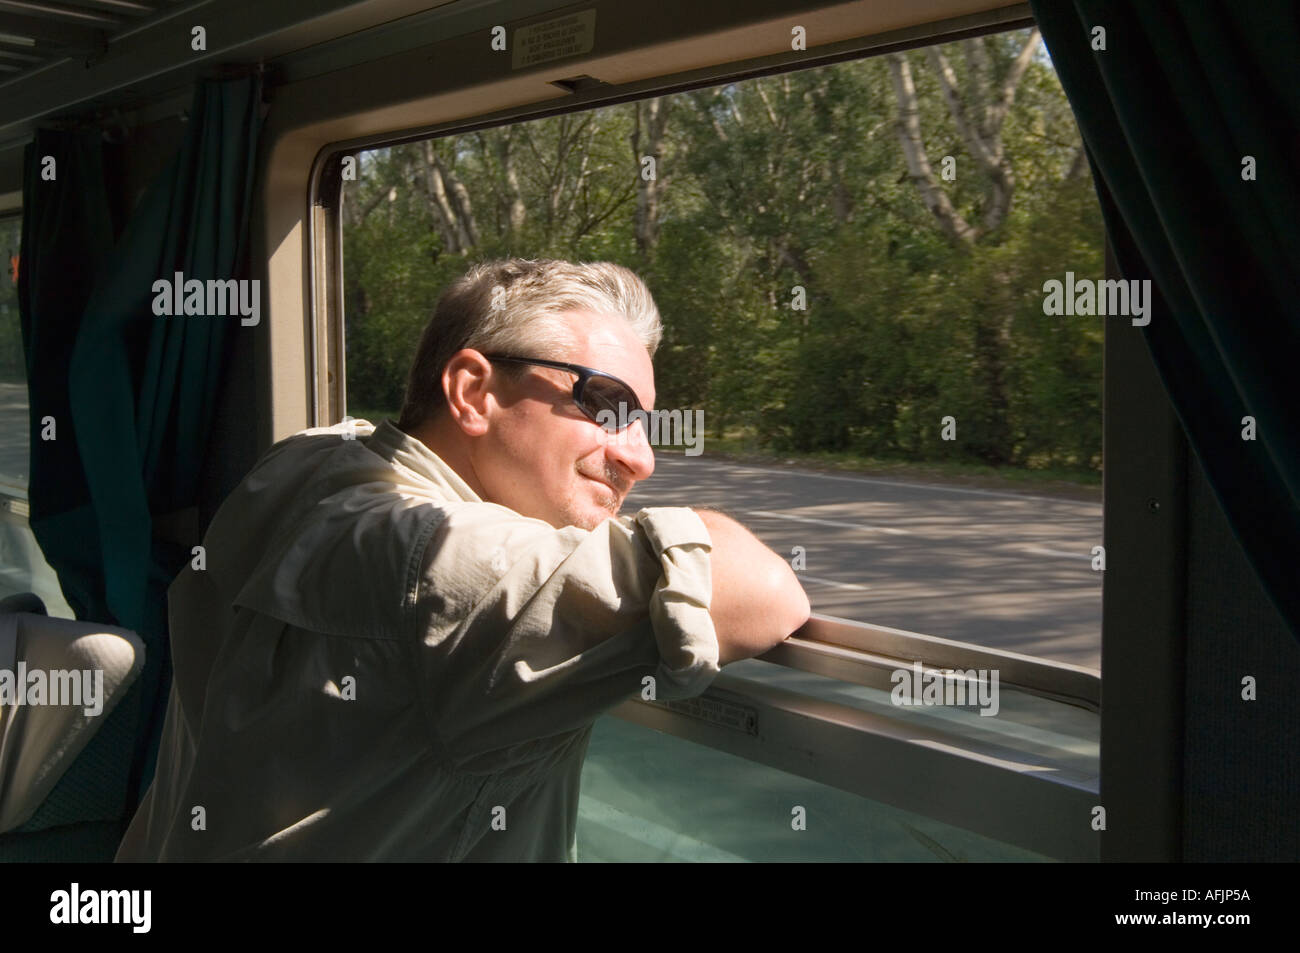 Ordinaire Middle Aged Man In A Travelling Shirt And Sunglasses Leaning On His Elbows  Out The Window Of Italian Train Car With Sun On Face